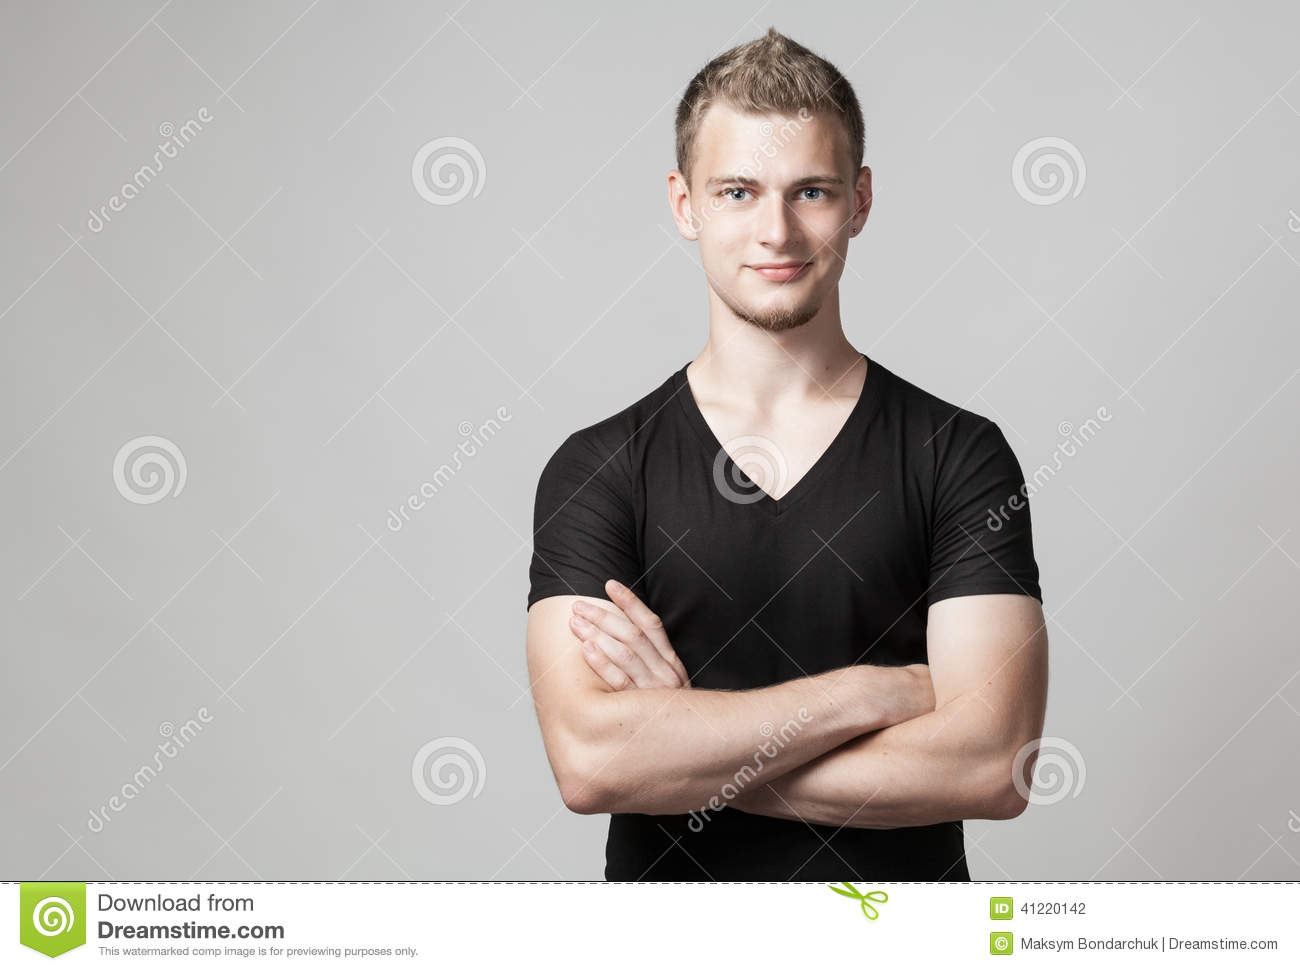 Young man with folded arms isolated on light background